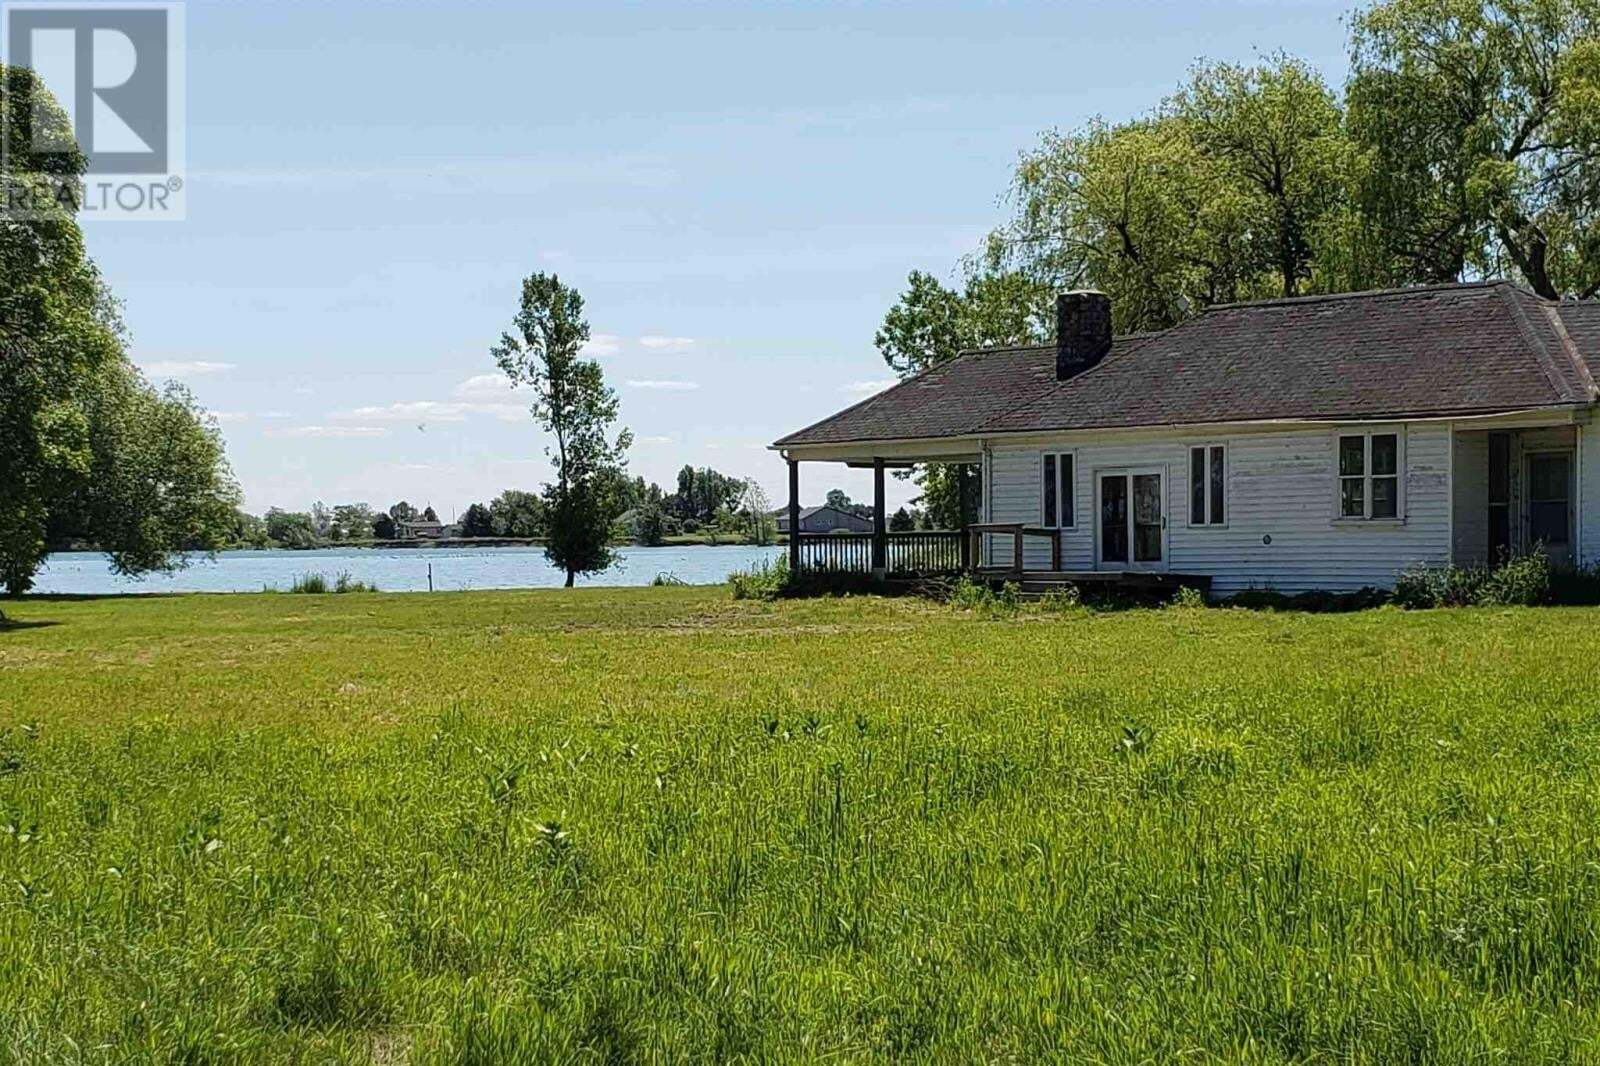 House for sale at 450 Front Rd Stella, Amherst Island Ontario - MLS: K20003182